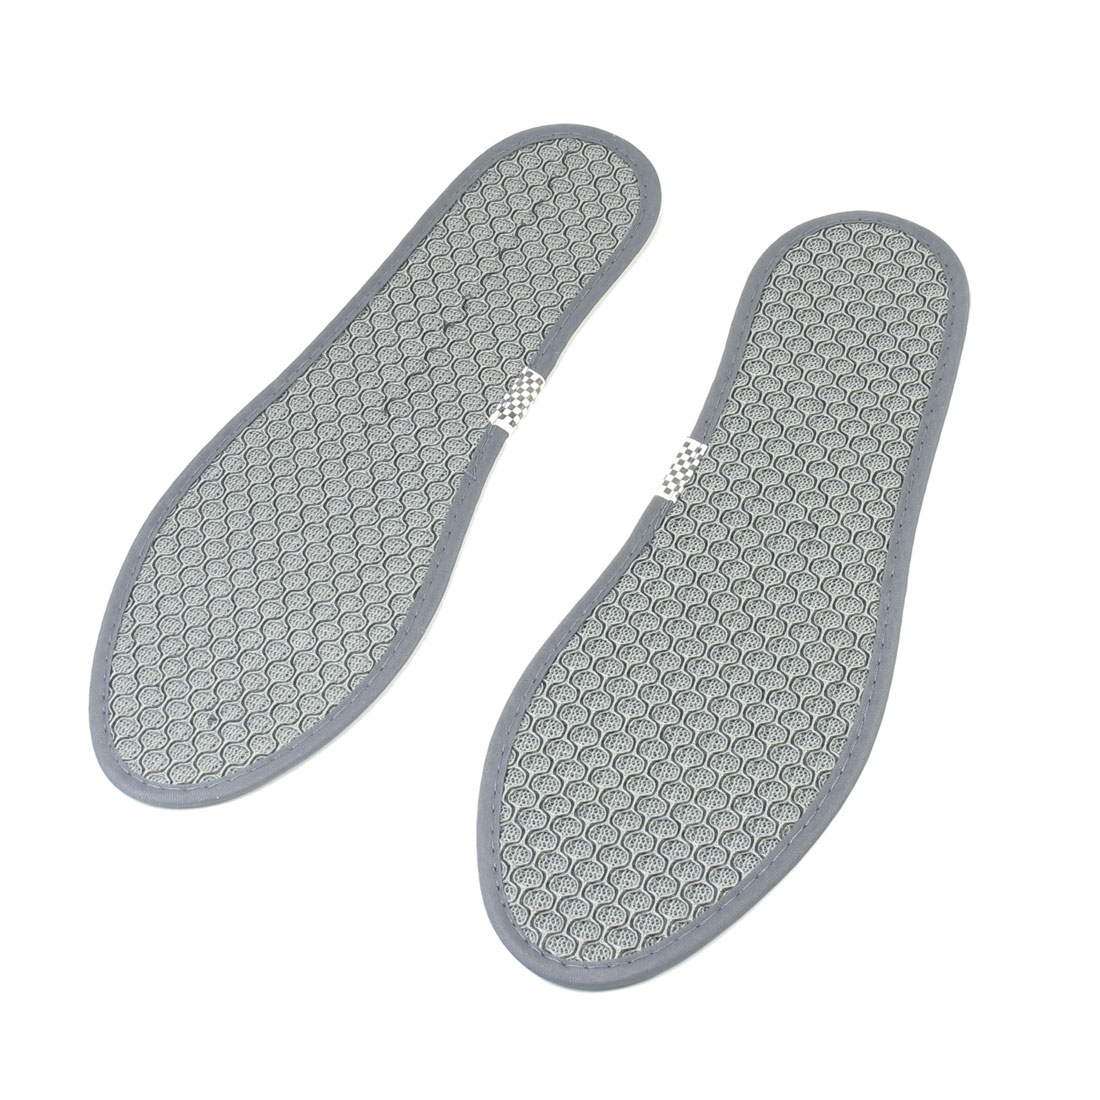 Brown Gray Pair Nylon Non Woven Fabric Insoles Shoe Pads US Size 7 for Man